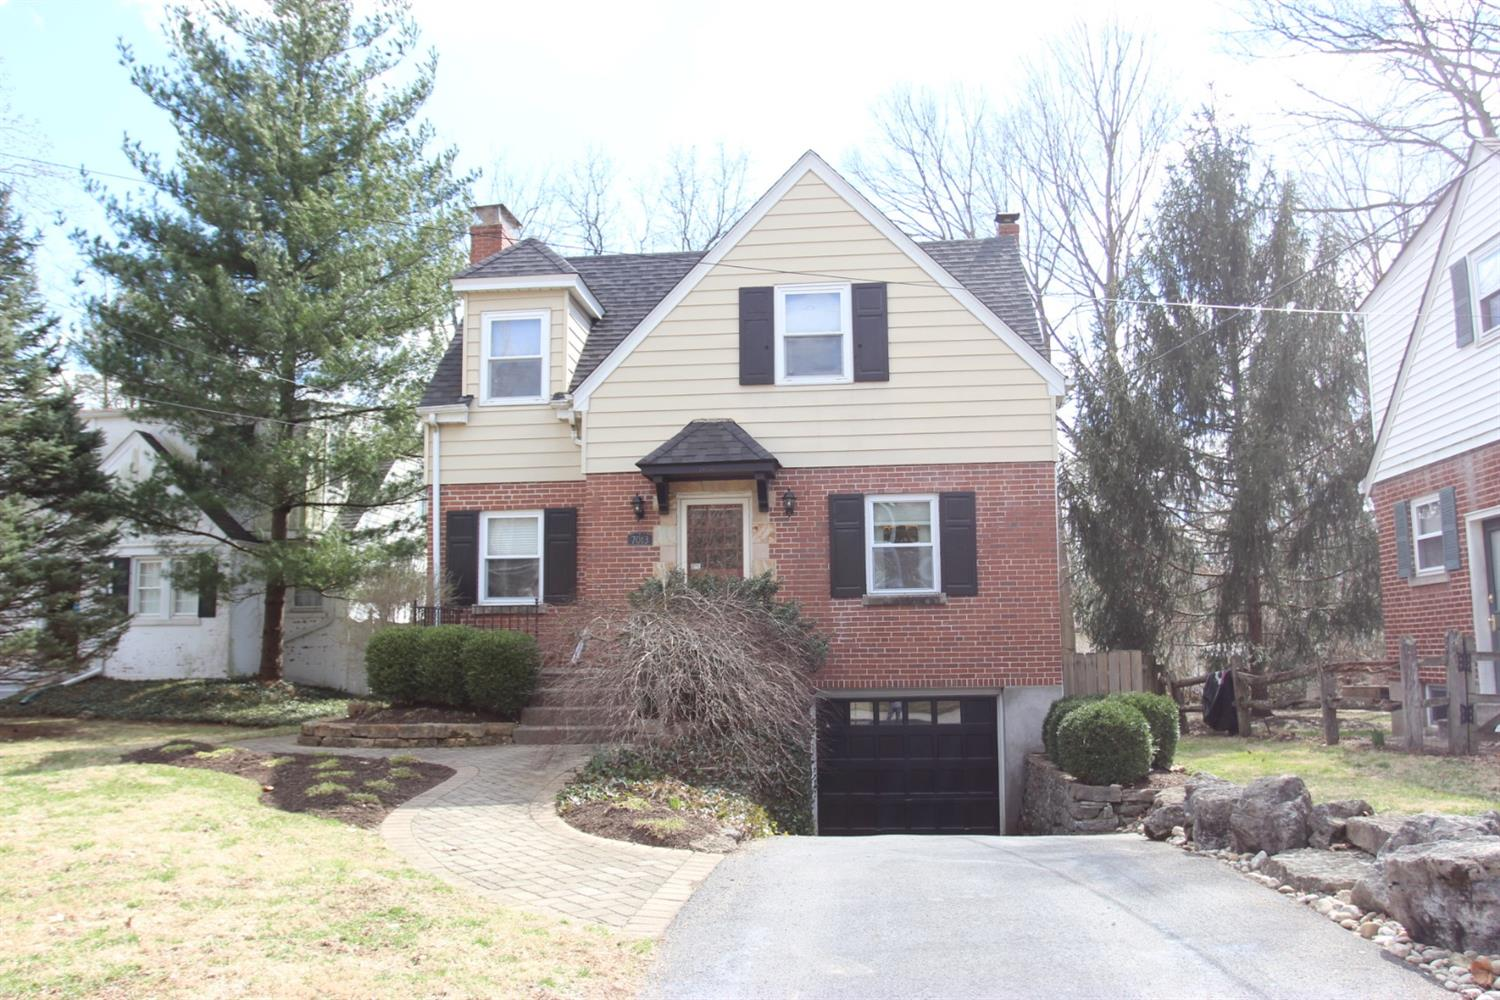 7013 Rembold Ave Mariemont, OH